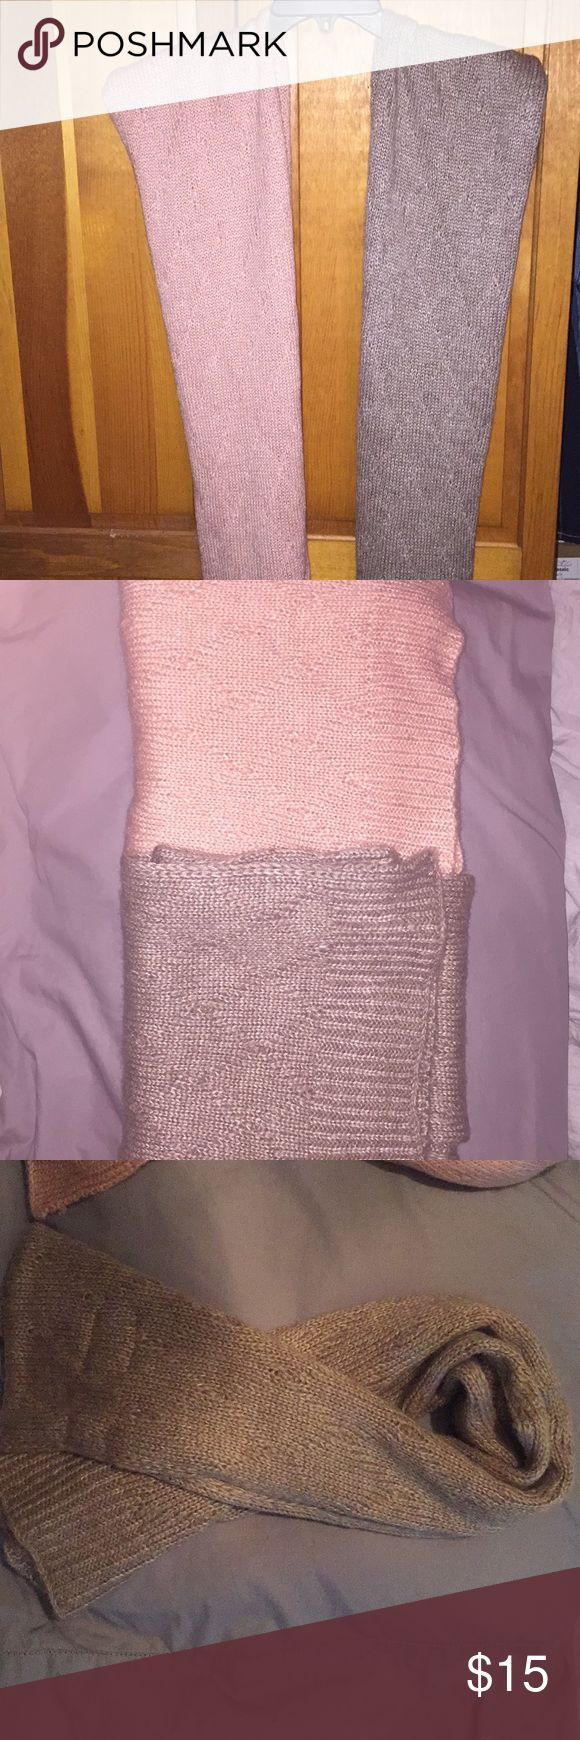 Set of 2 old navy scarves Set of 2 old navy scarves one pink one taupe basically new without tags sweater material Old Navy Accessories Scarves & Wraps